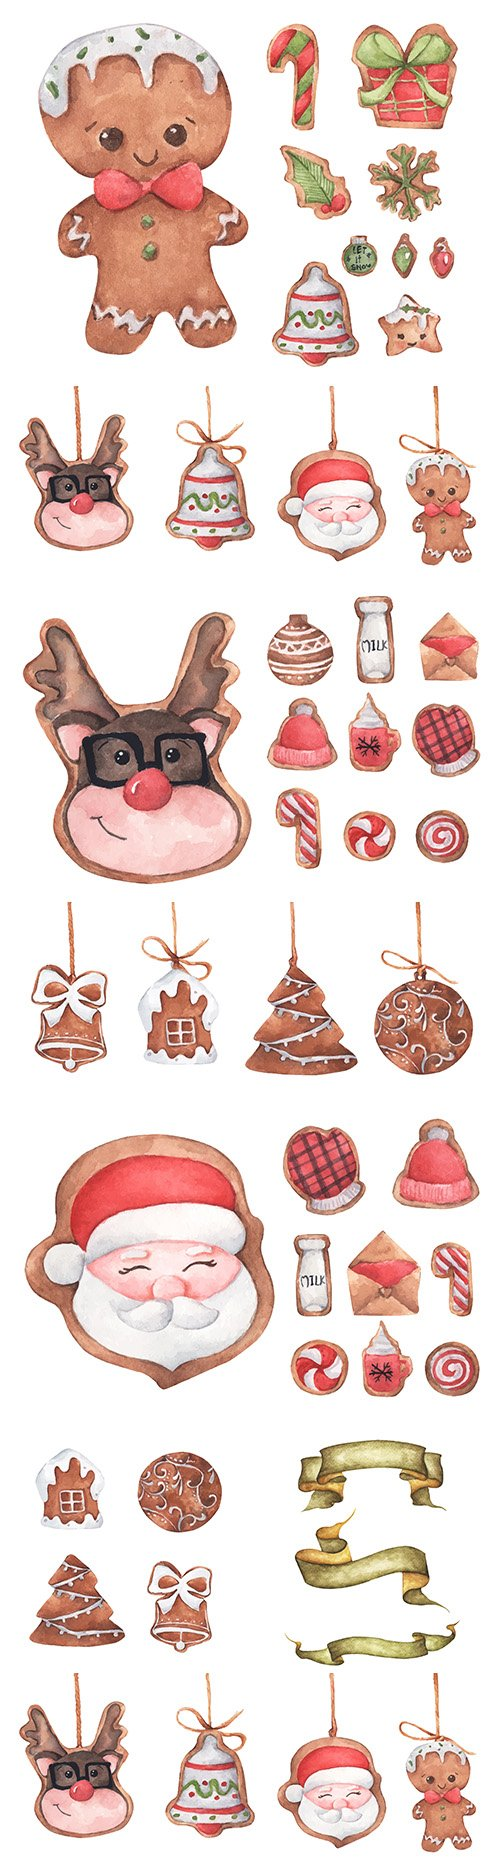 Cute Christmas gingerbread and watercolor cookies illustration